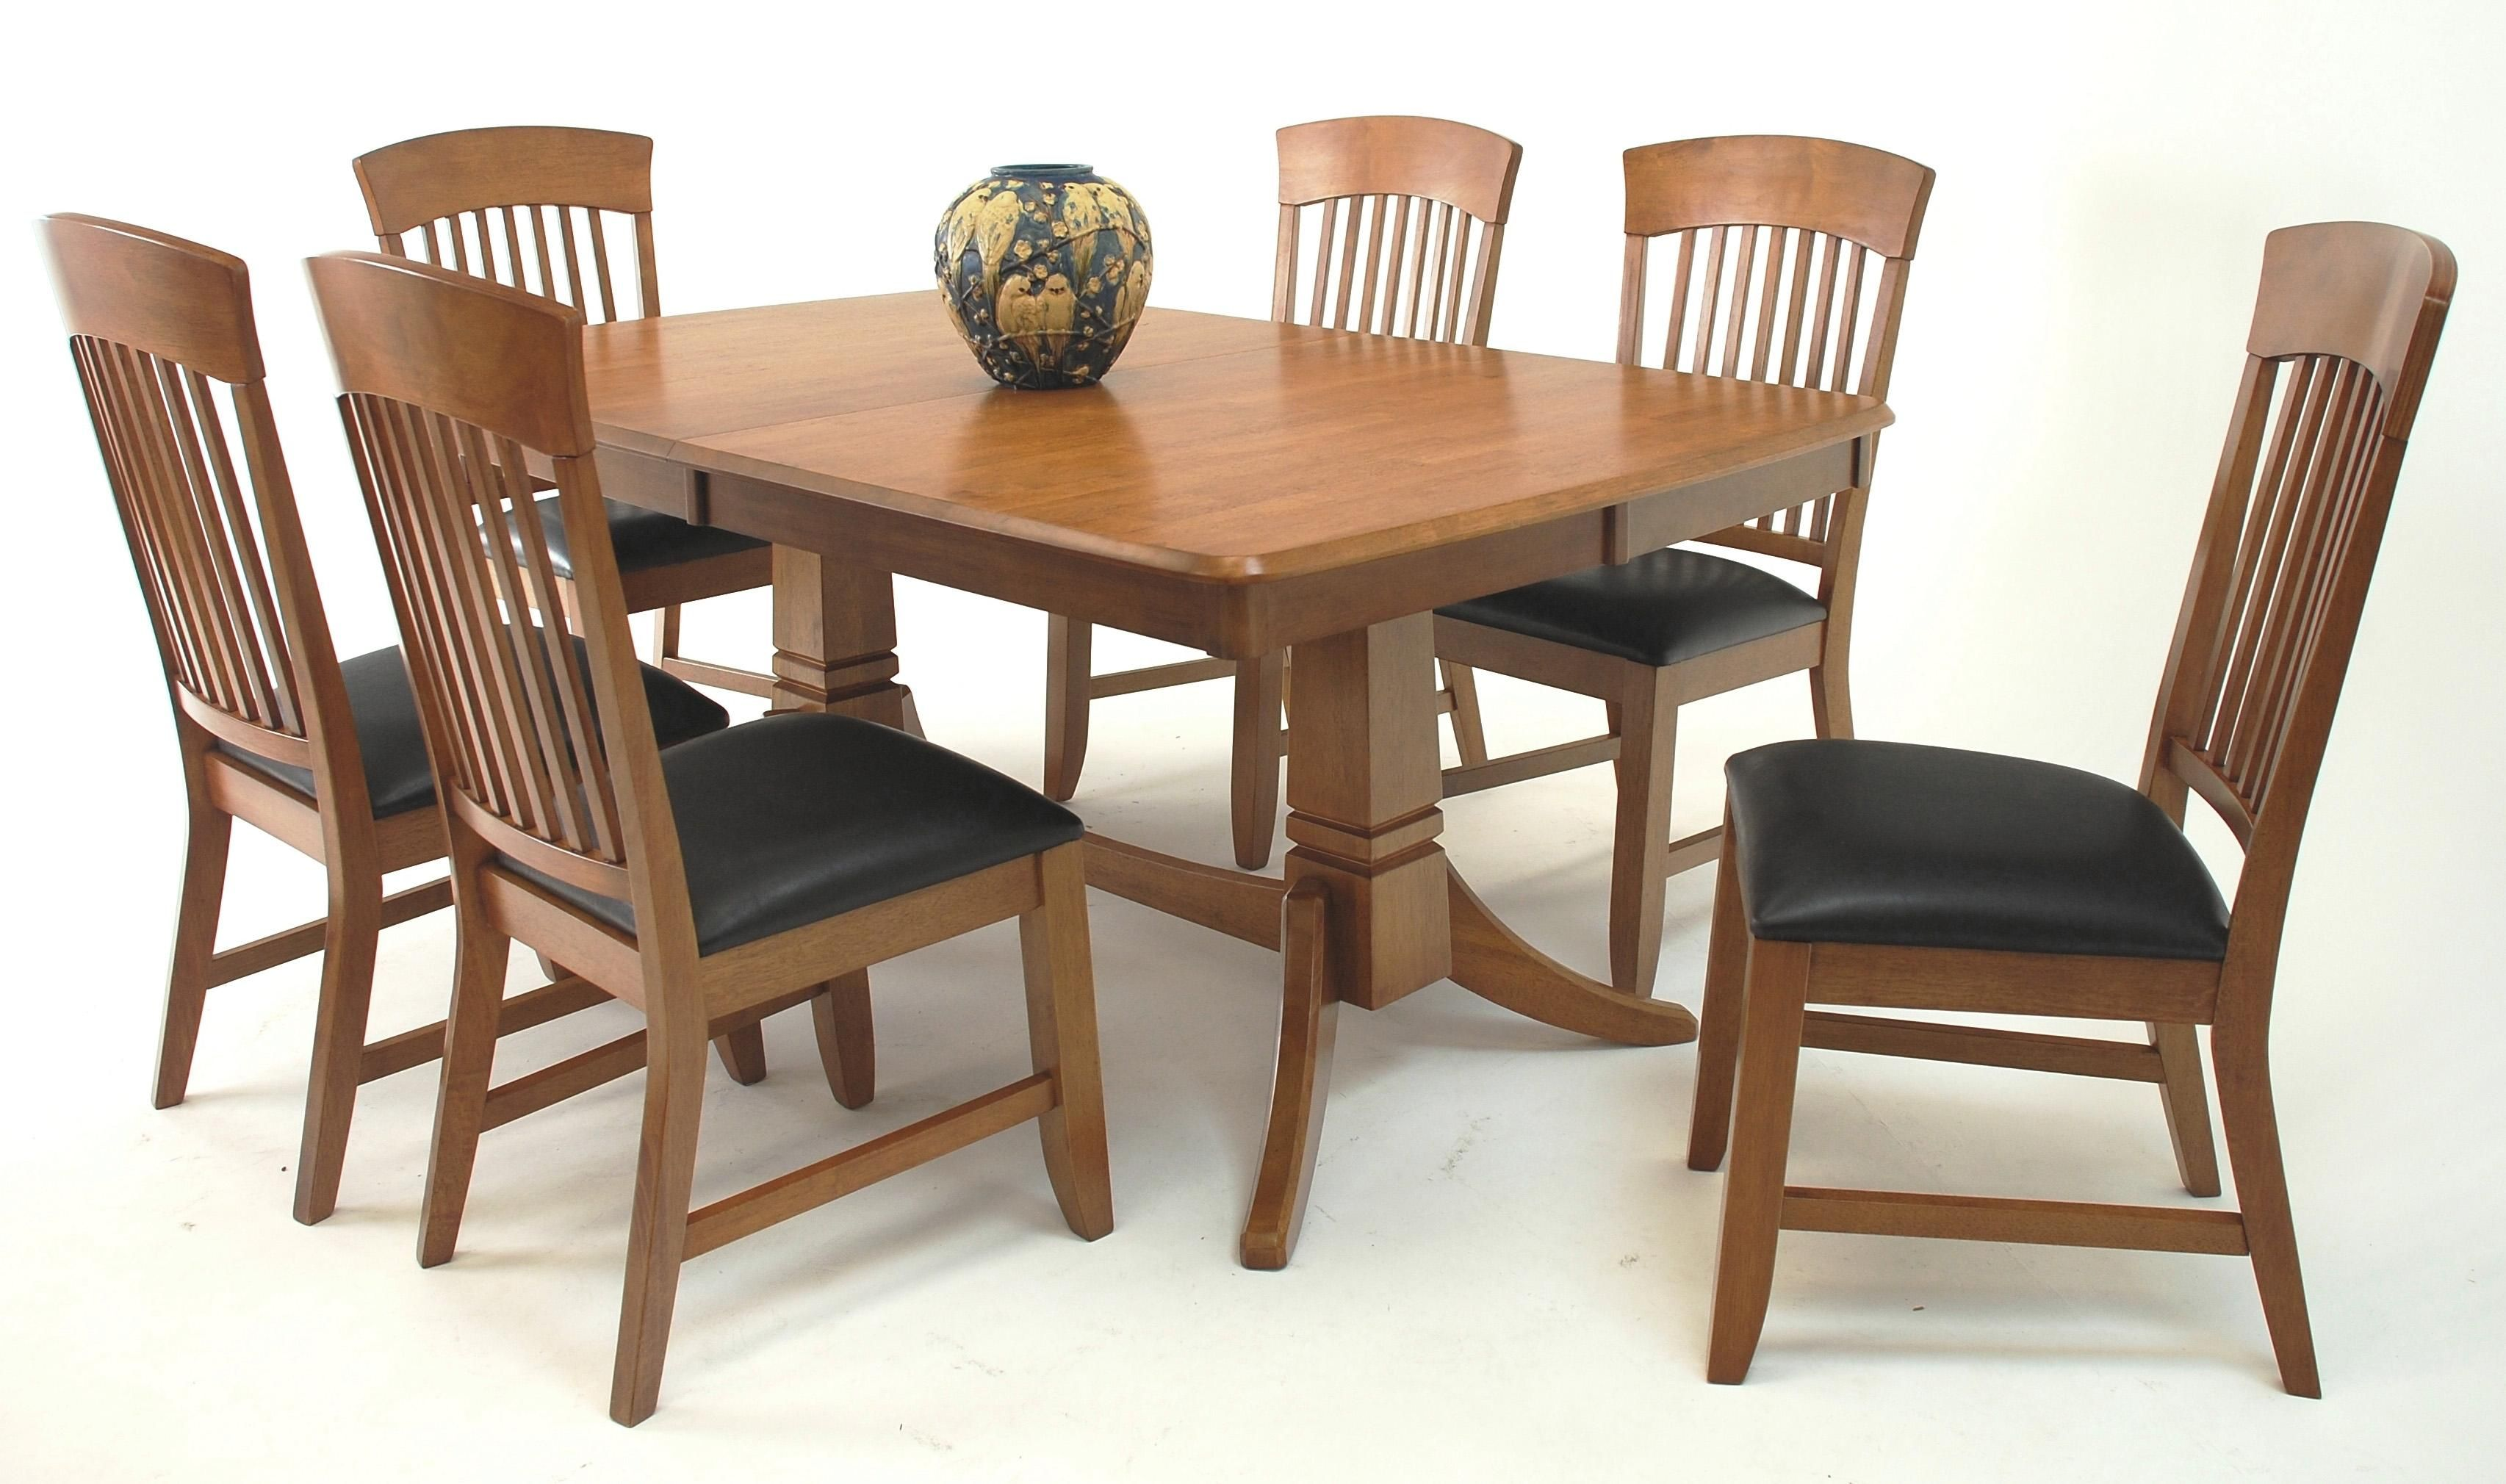 Furniture Table And Chairs Furniture Dining Table Contemporary Dining Room Furniture Dining Room Design